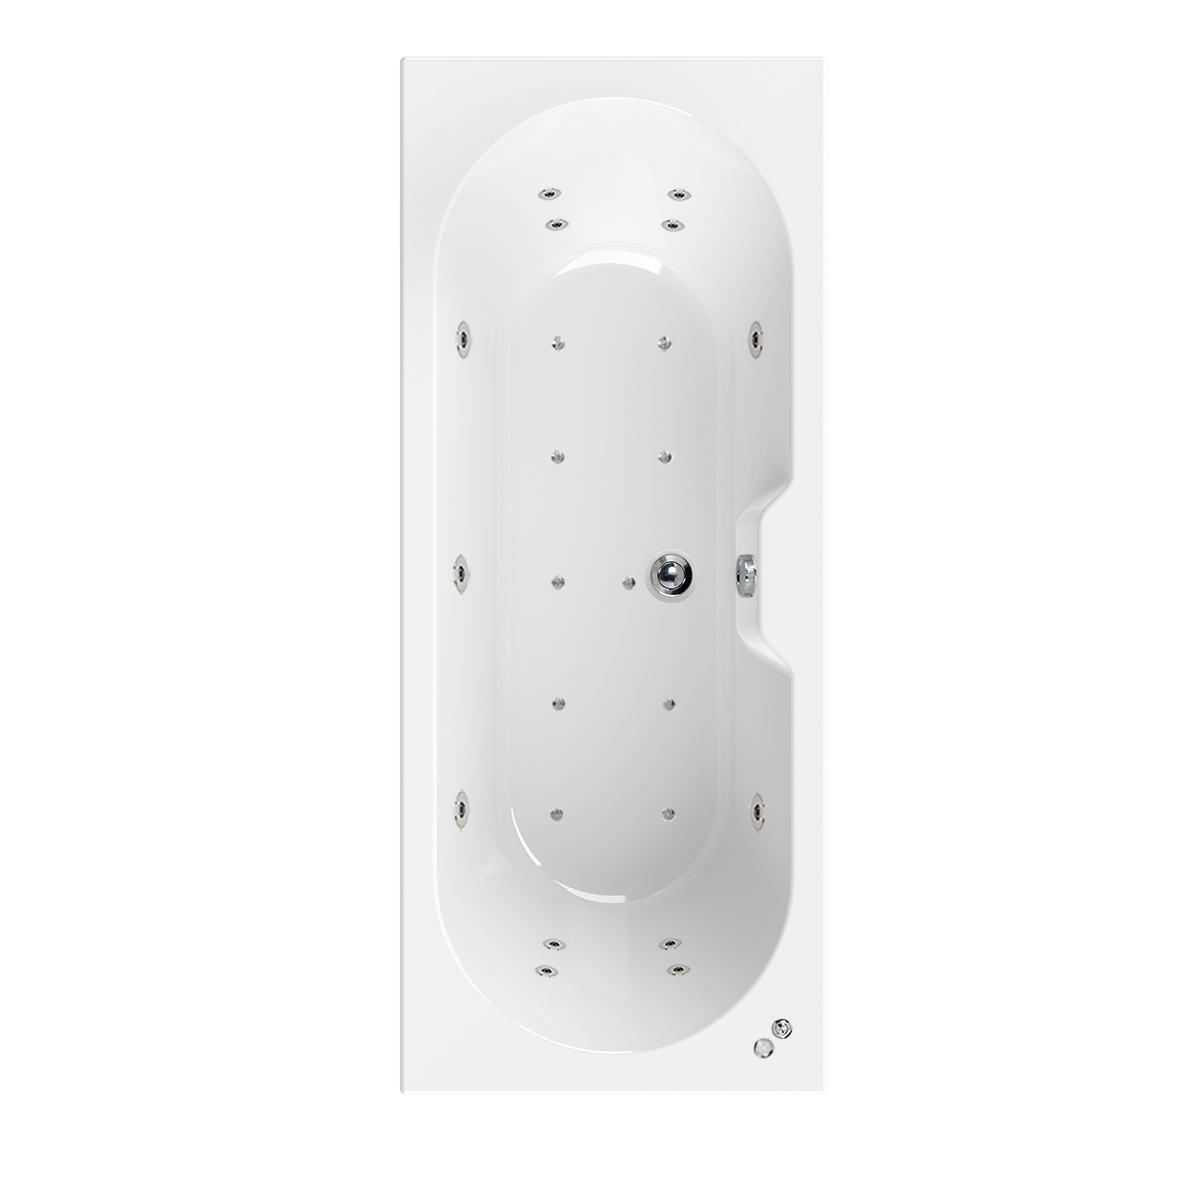 Aquaestil Calisto 24 Jet Whirlpool Spa Bath